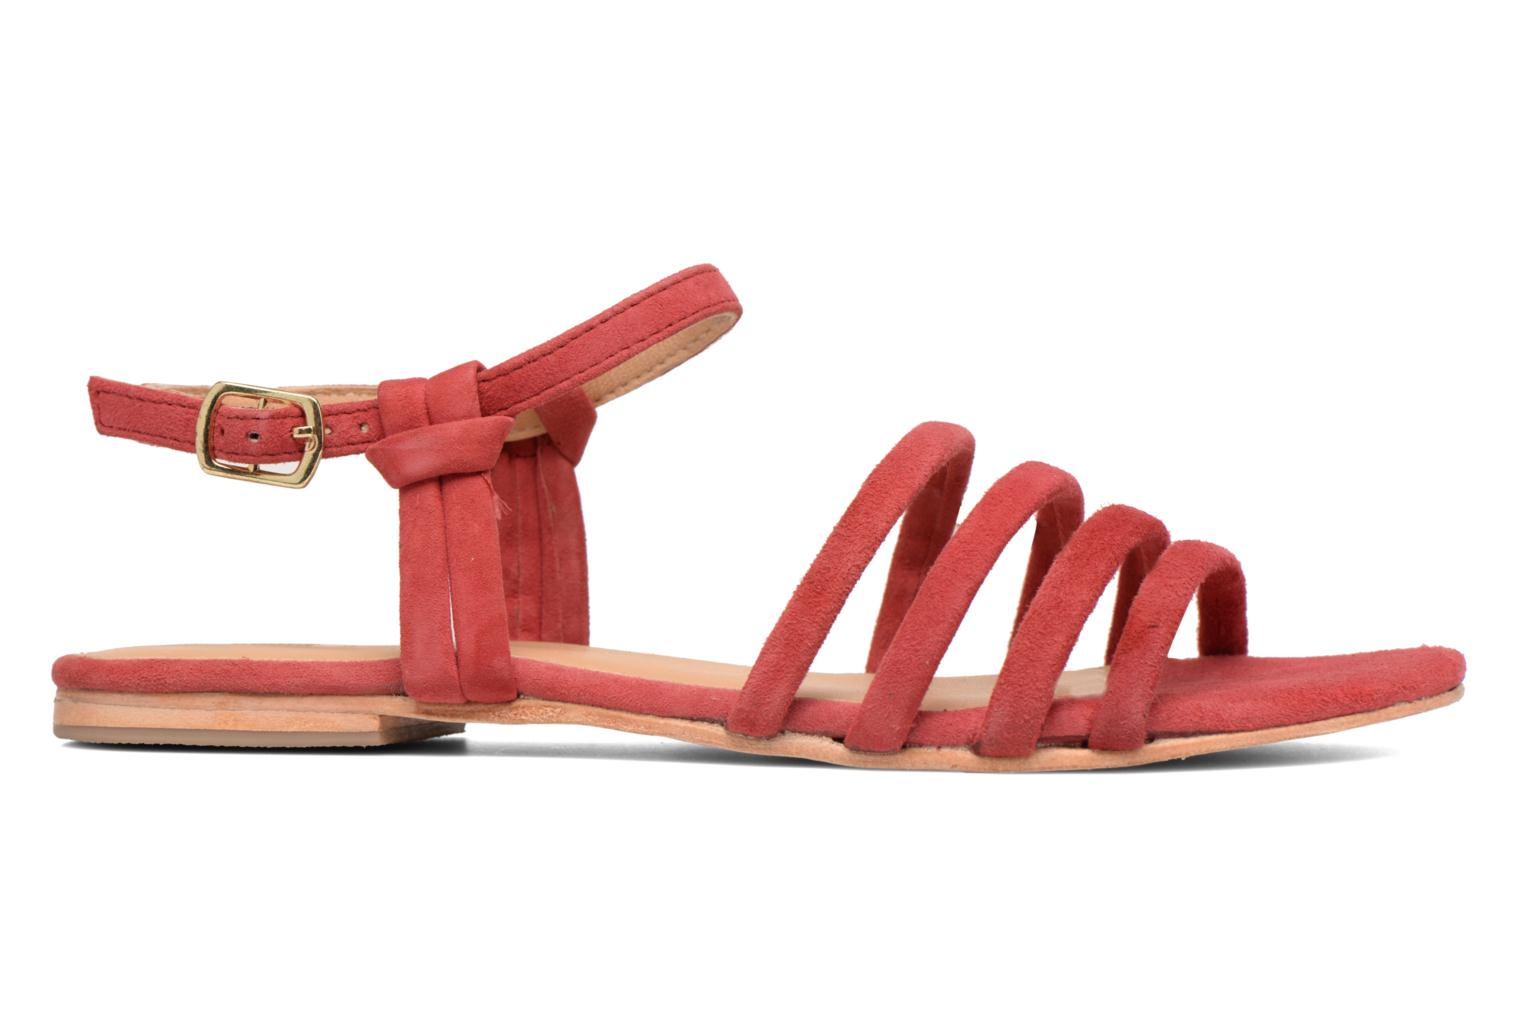 Marques Chaussure femme Made by SARENZA femme Bombay Babes Sandales Plates #5 cuir velours rouge